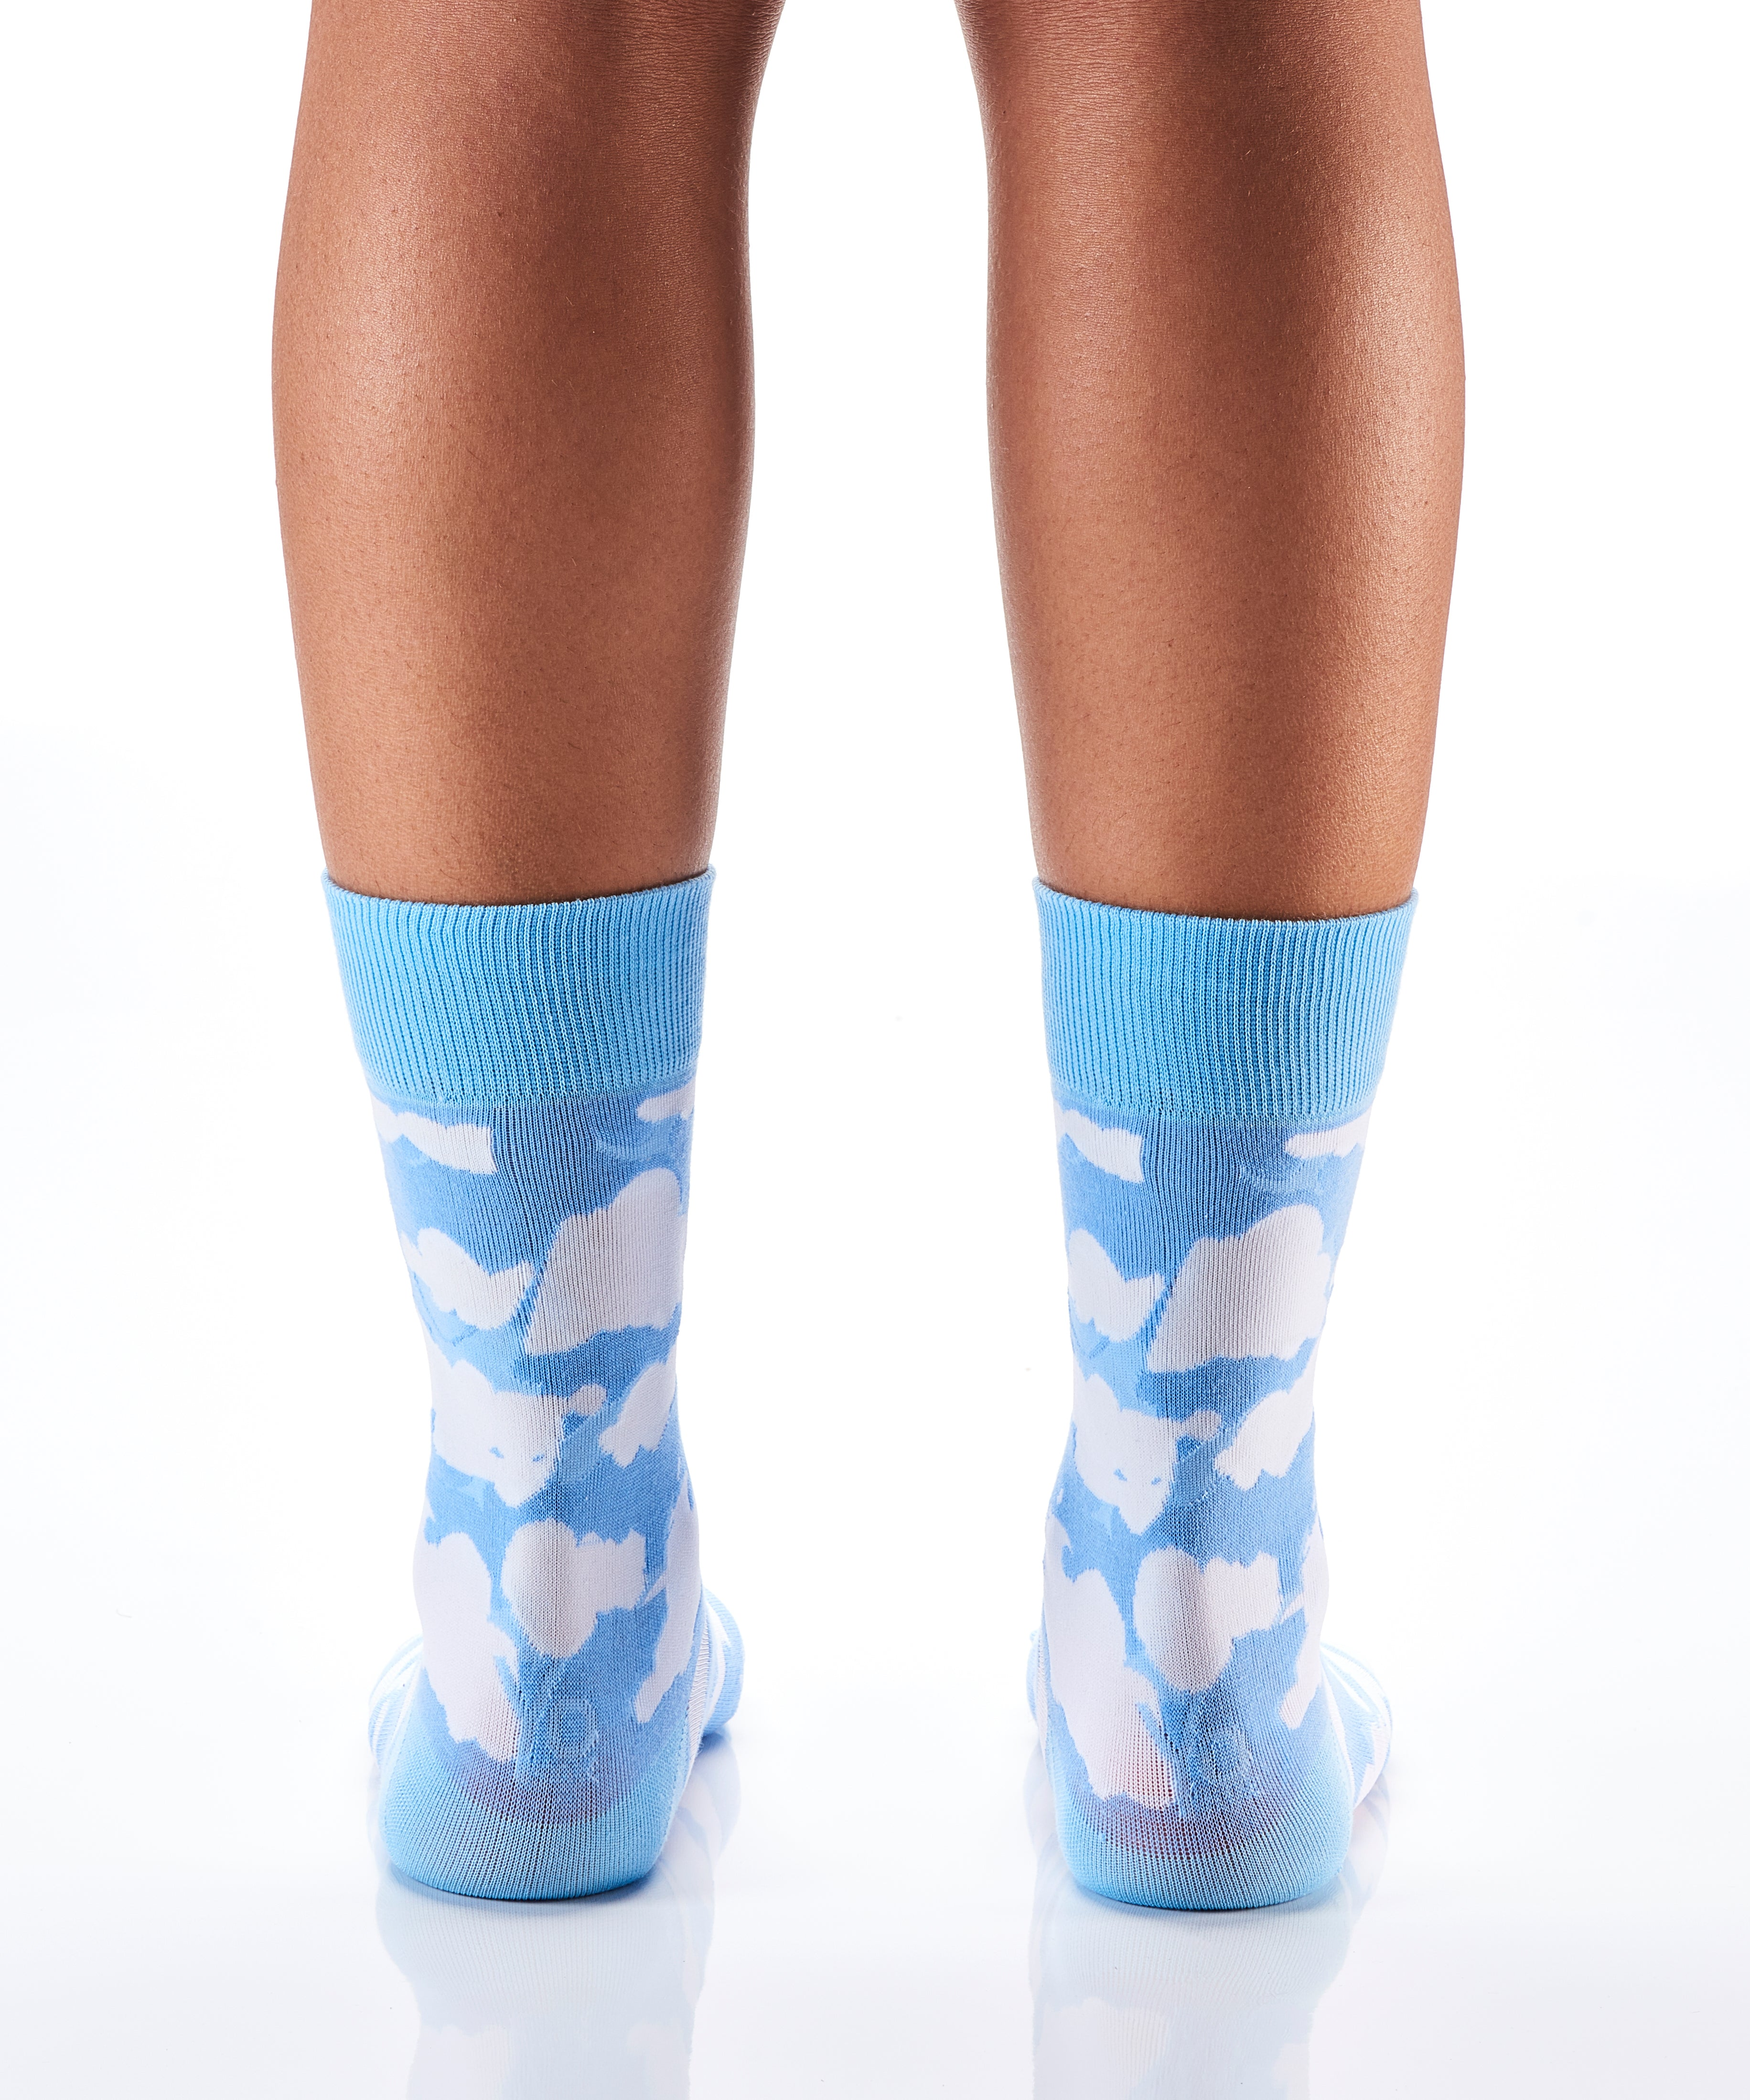 Cloud 9: Women's Crew Socks - Yo Sox Canada